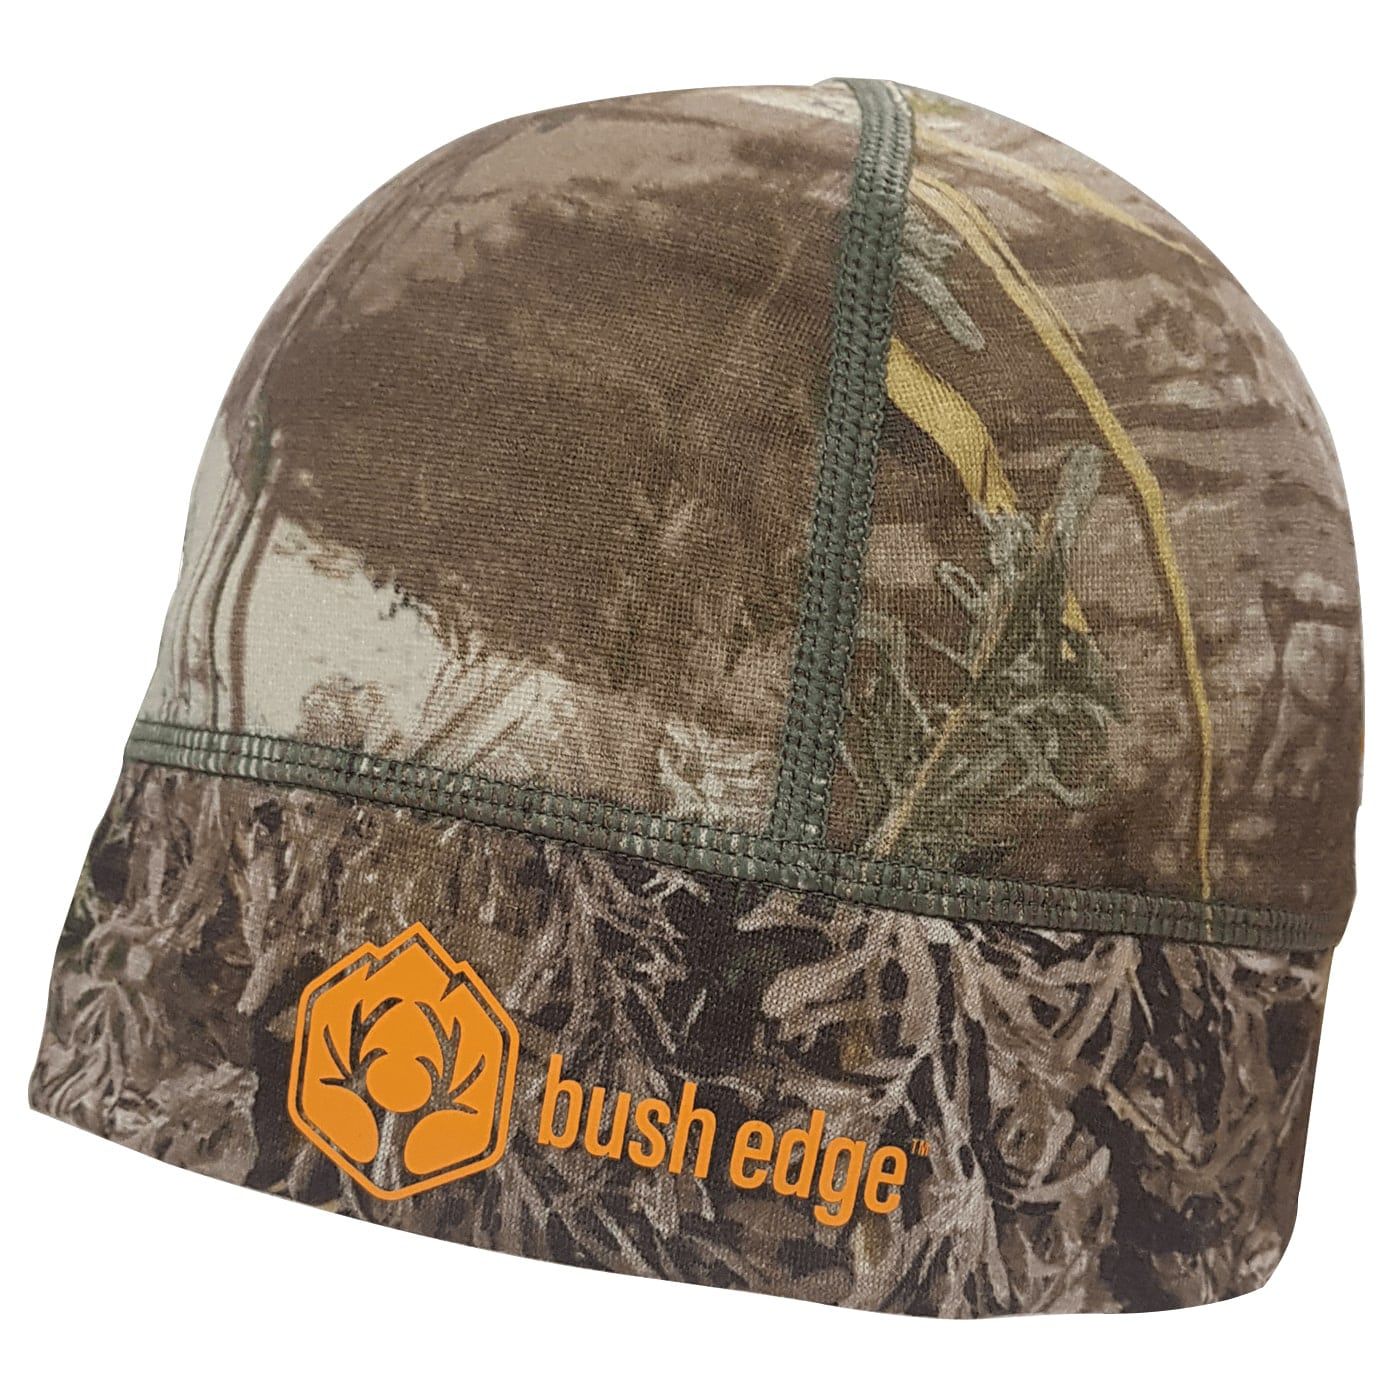 Bush Edge Lightweight Camo Merino Wool Beanie